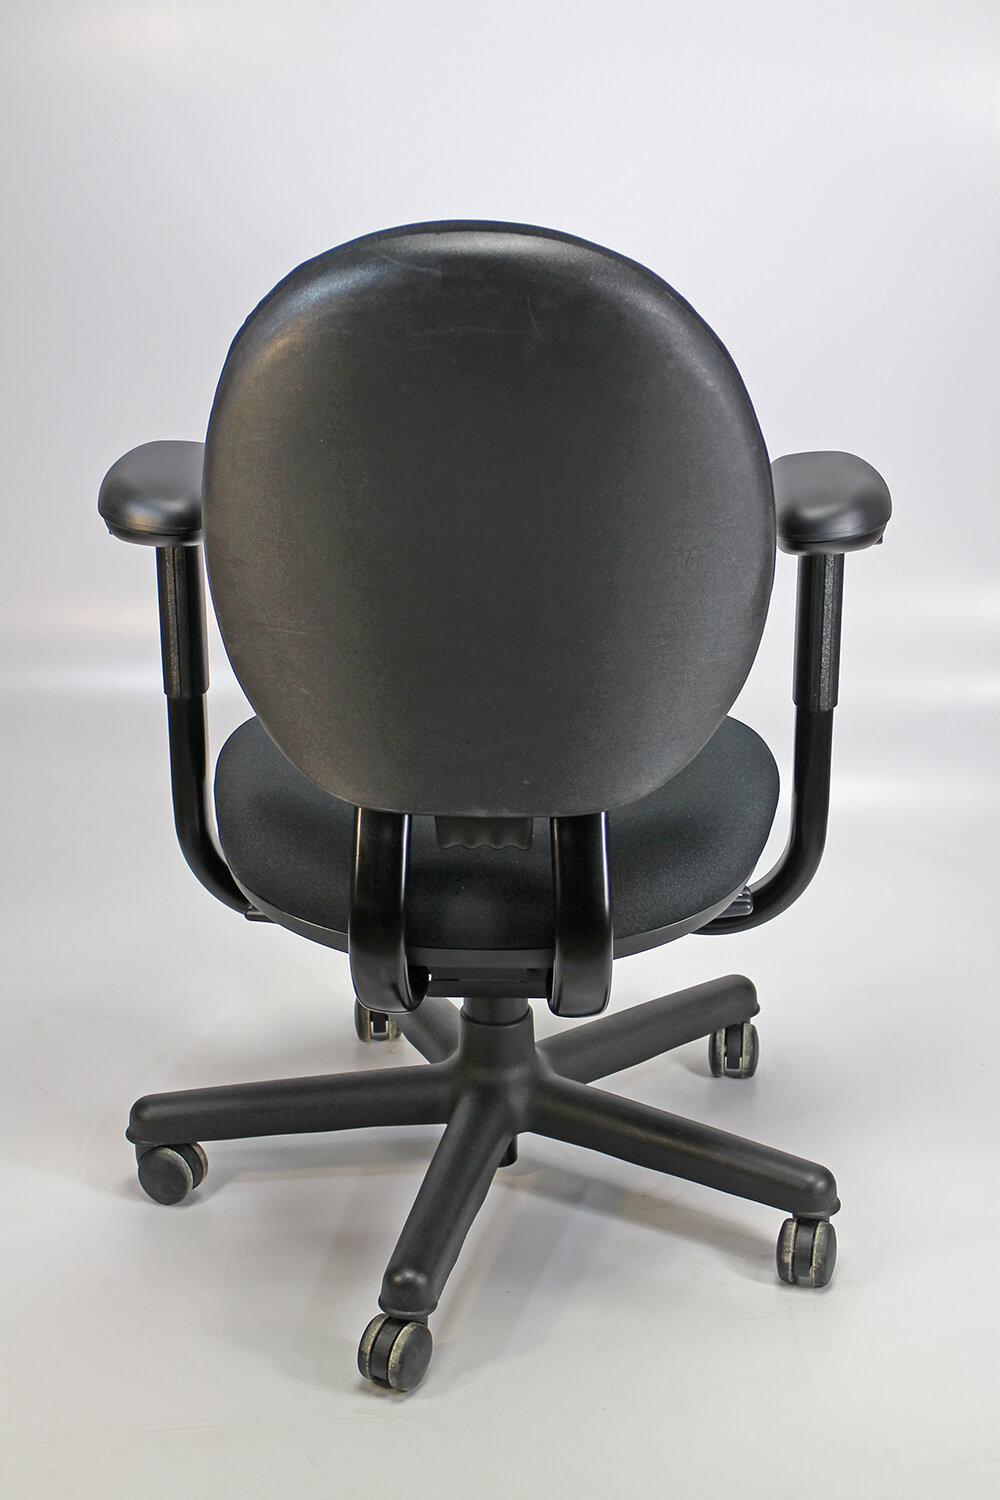 Steelcase criterion chair back vieew